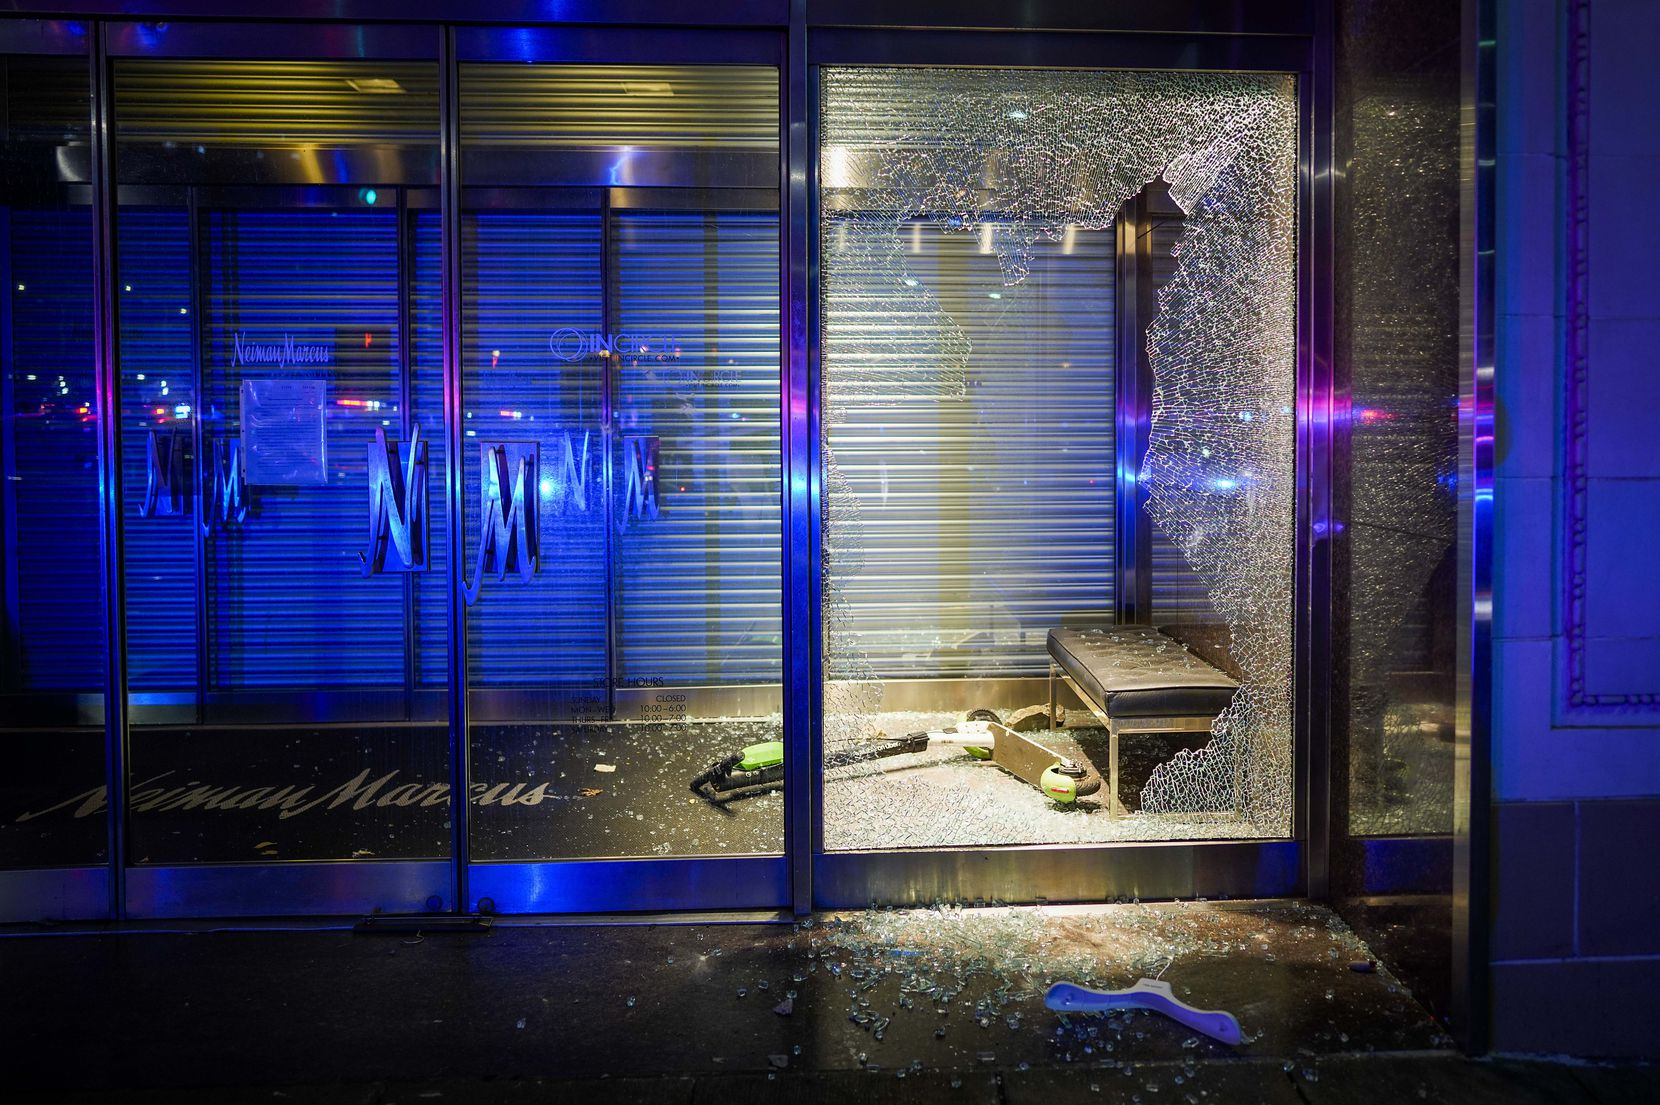 A rental scooter rest amidst broken glass after windows were smashed at the Nieman Marcus store downtown following a protest against police brutality in the early morning hours of Saturday, May 30, 2020, in Dallas.